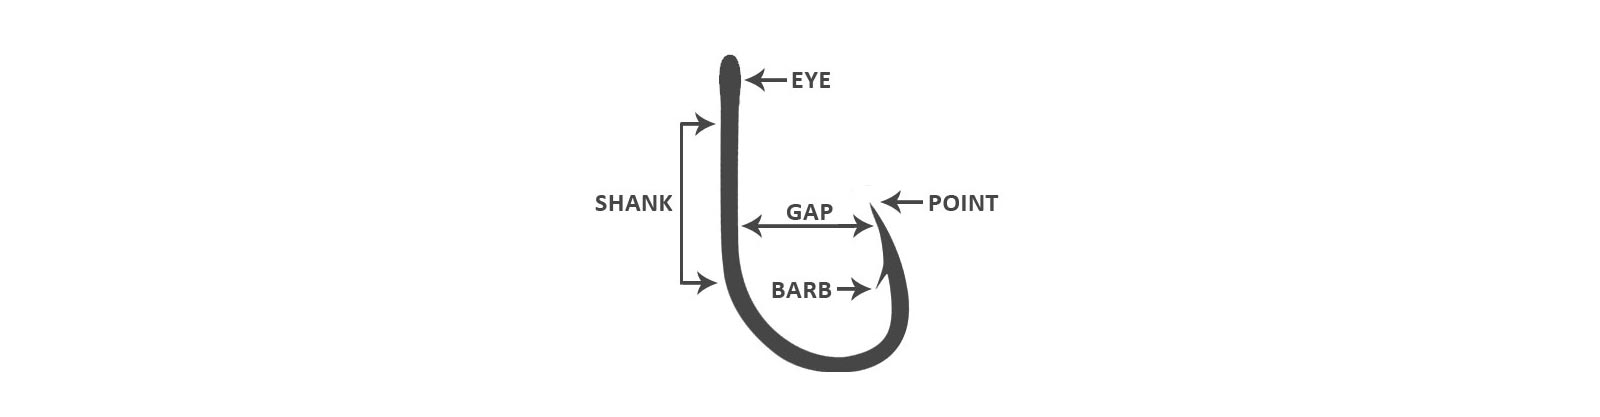 Fish Hook Diagram 2